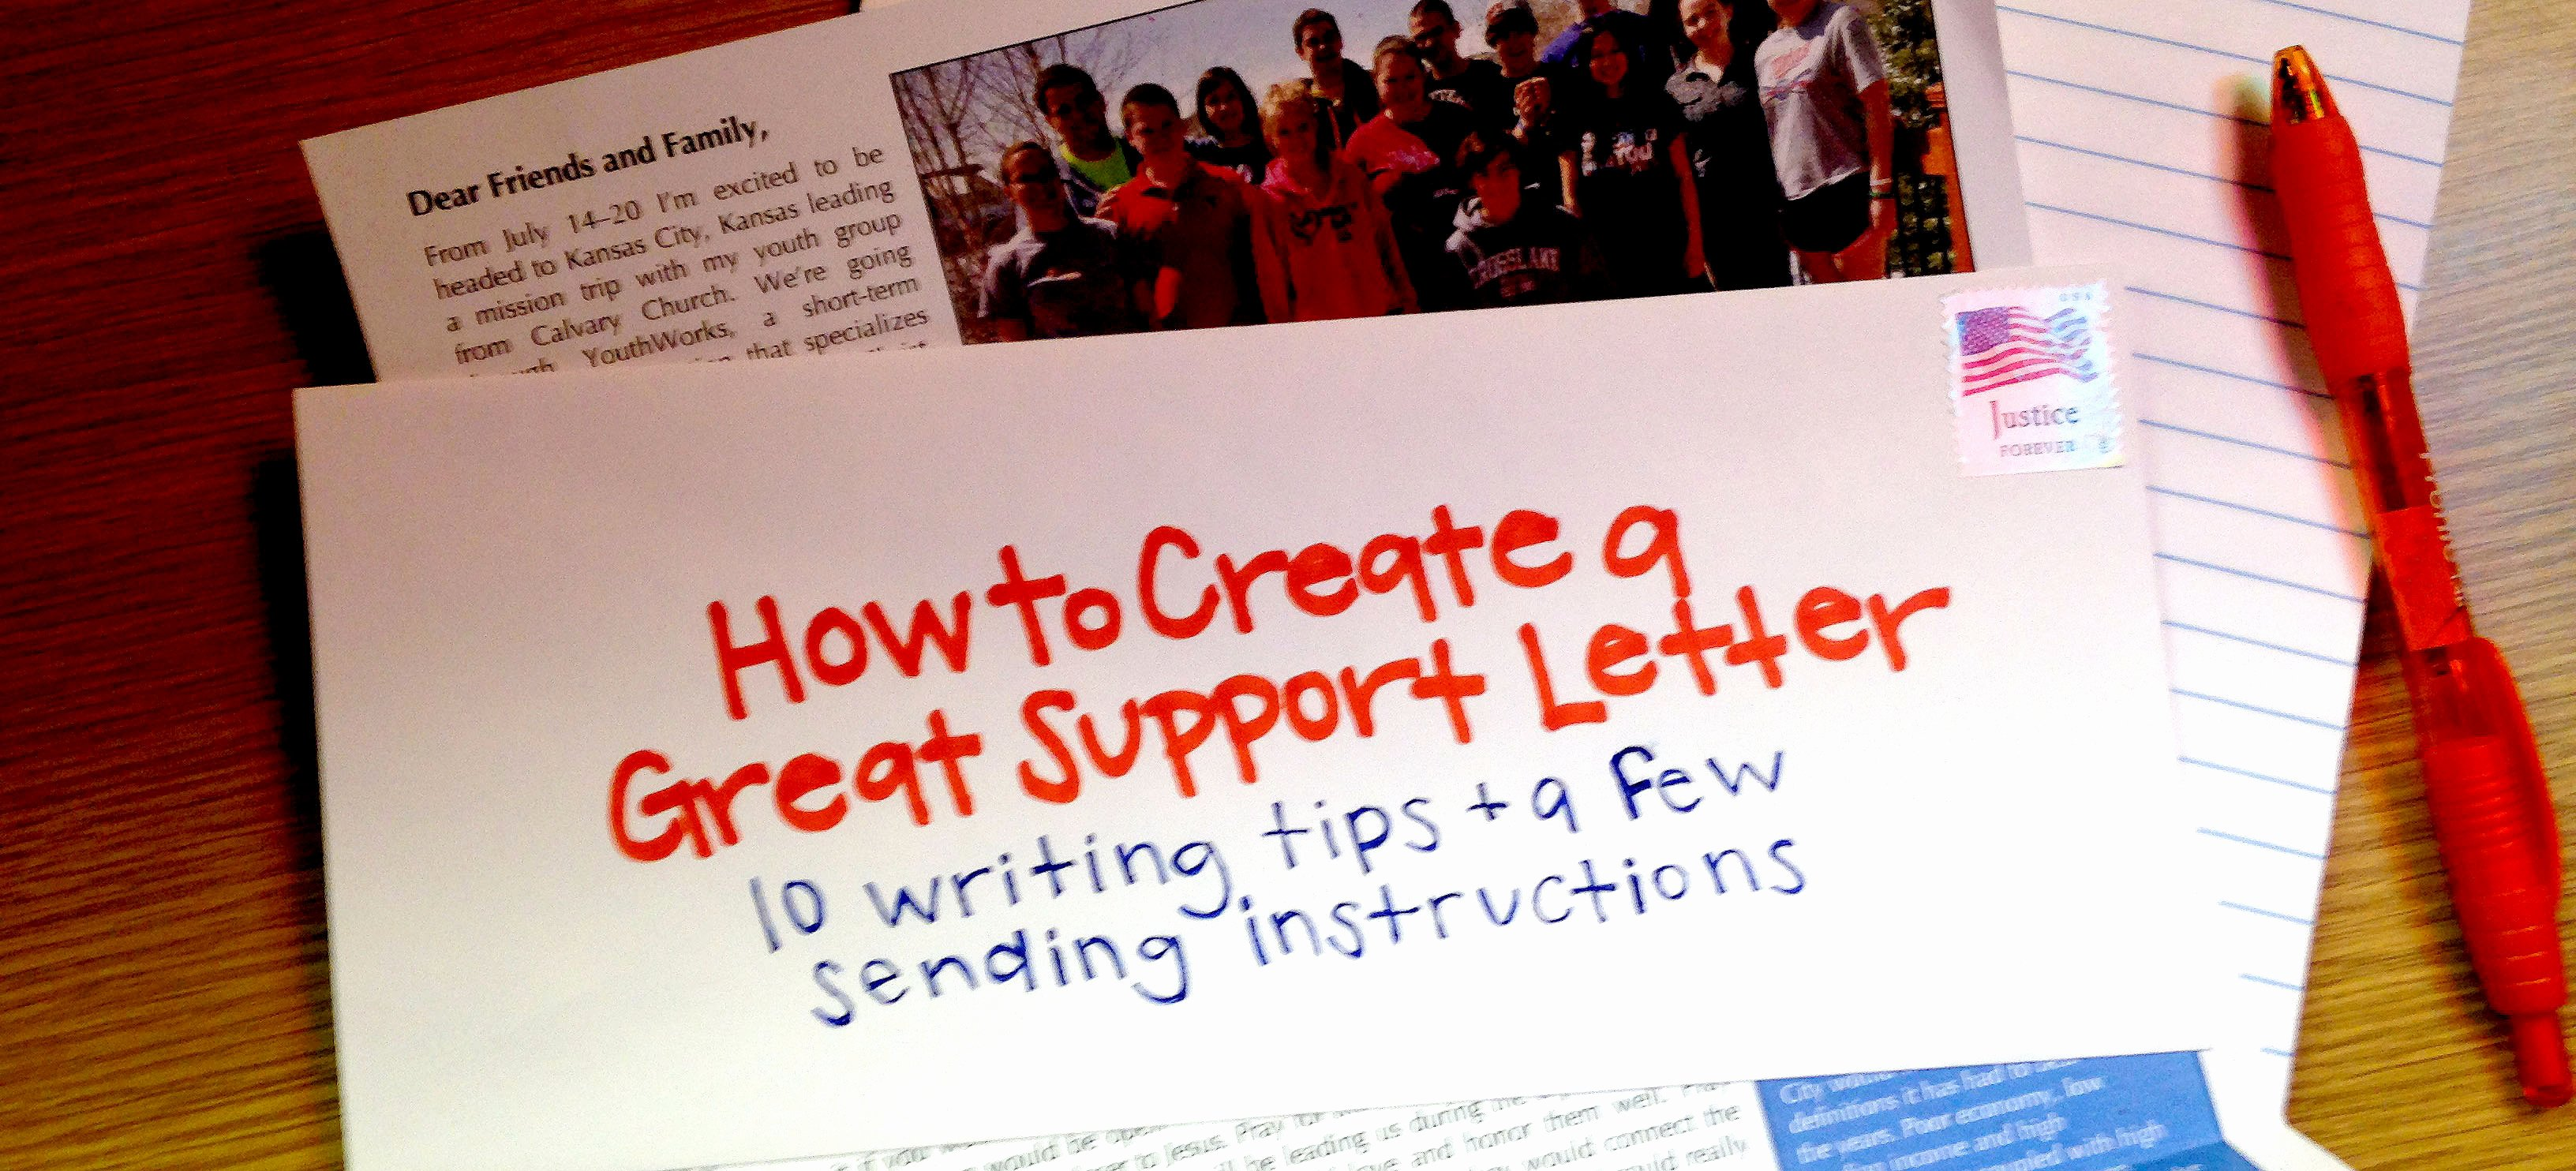 Mission Trip Donation Letter Template New How to Create A Great Support Letter Youthworks